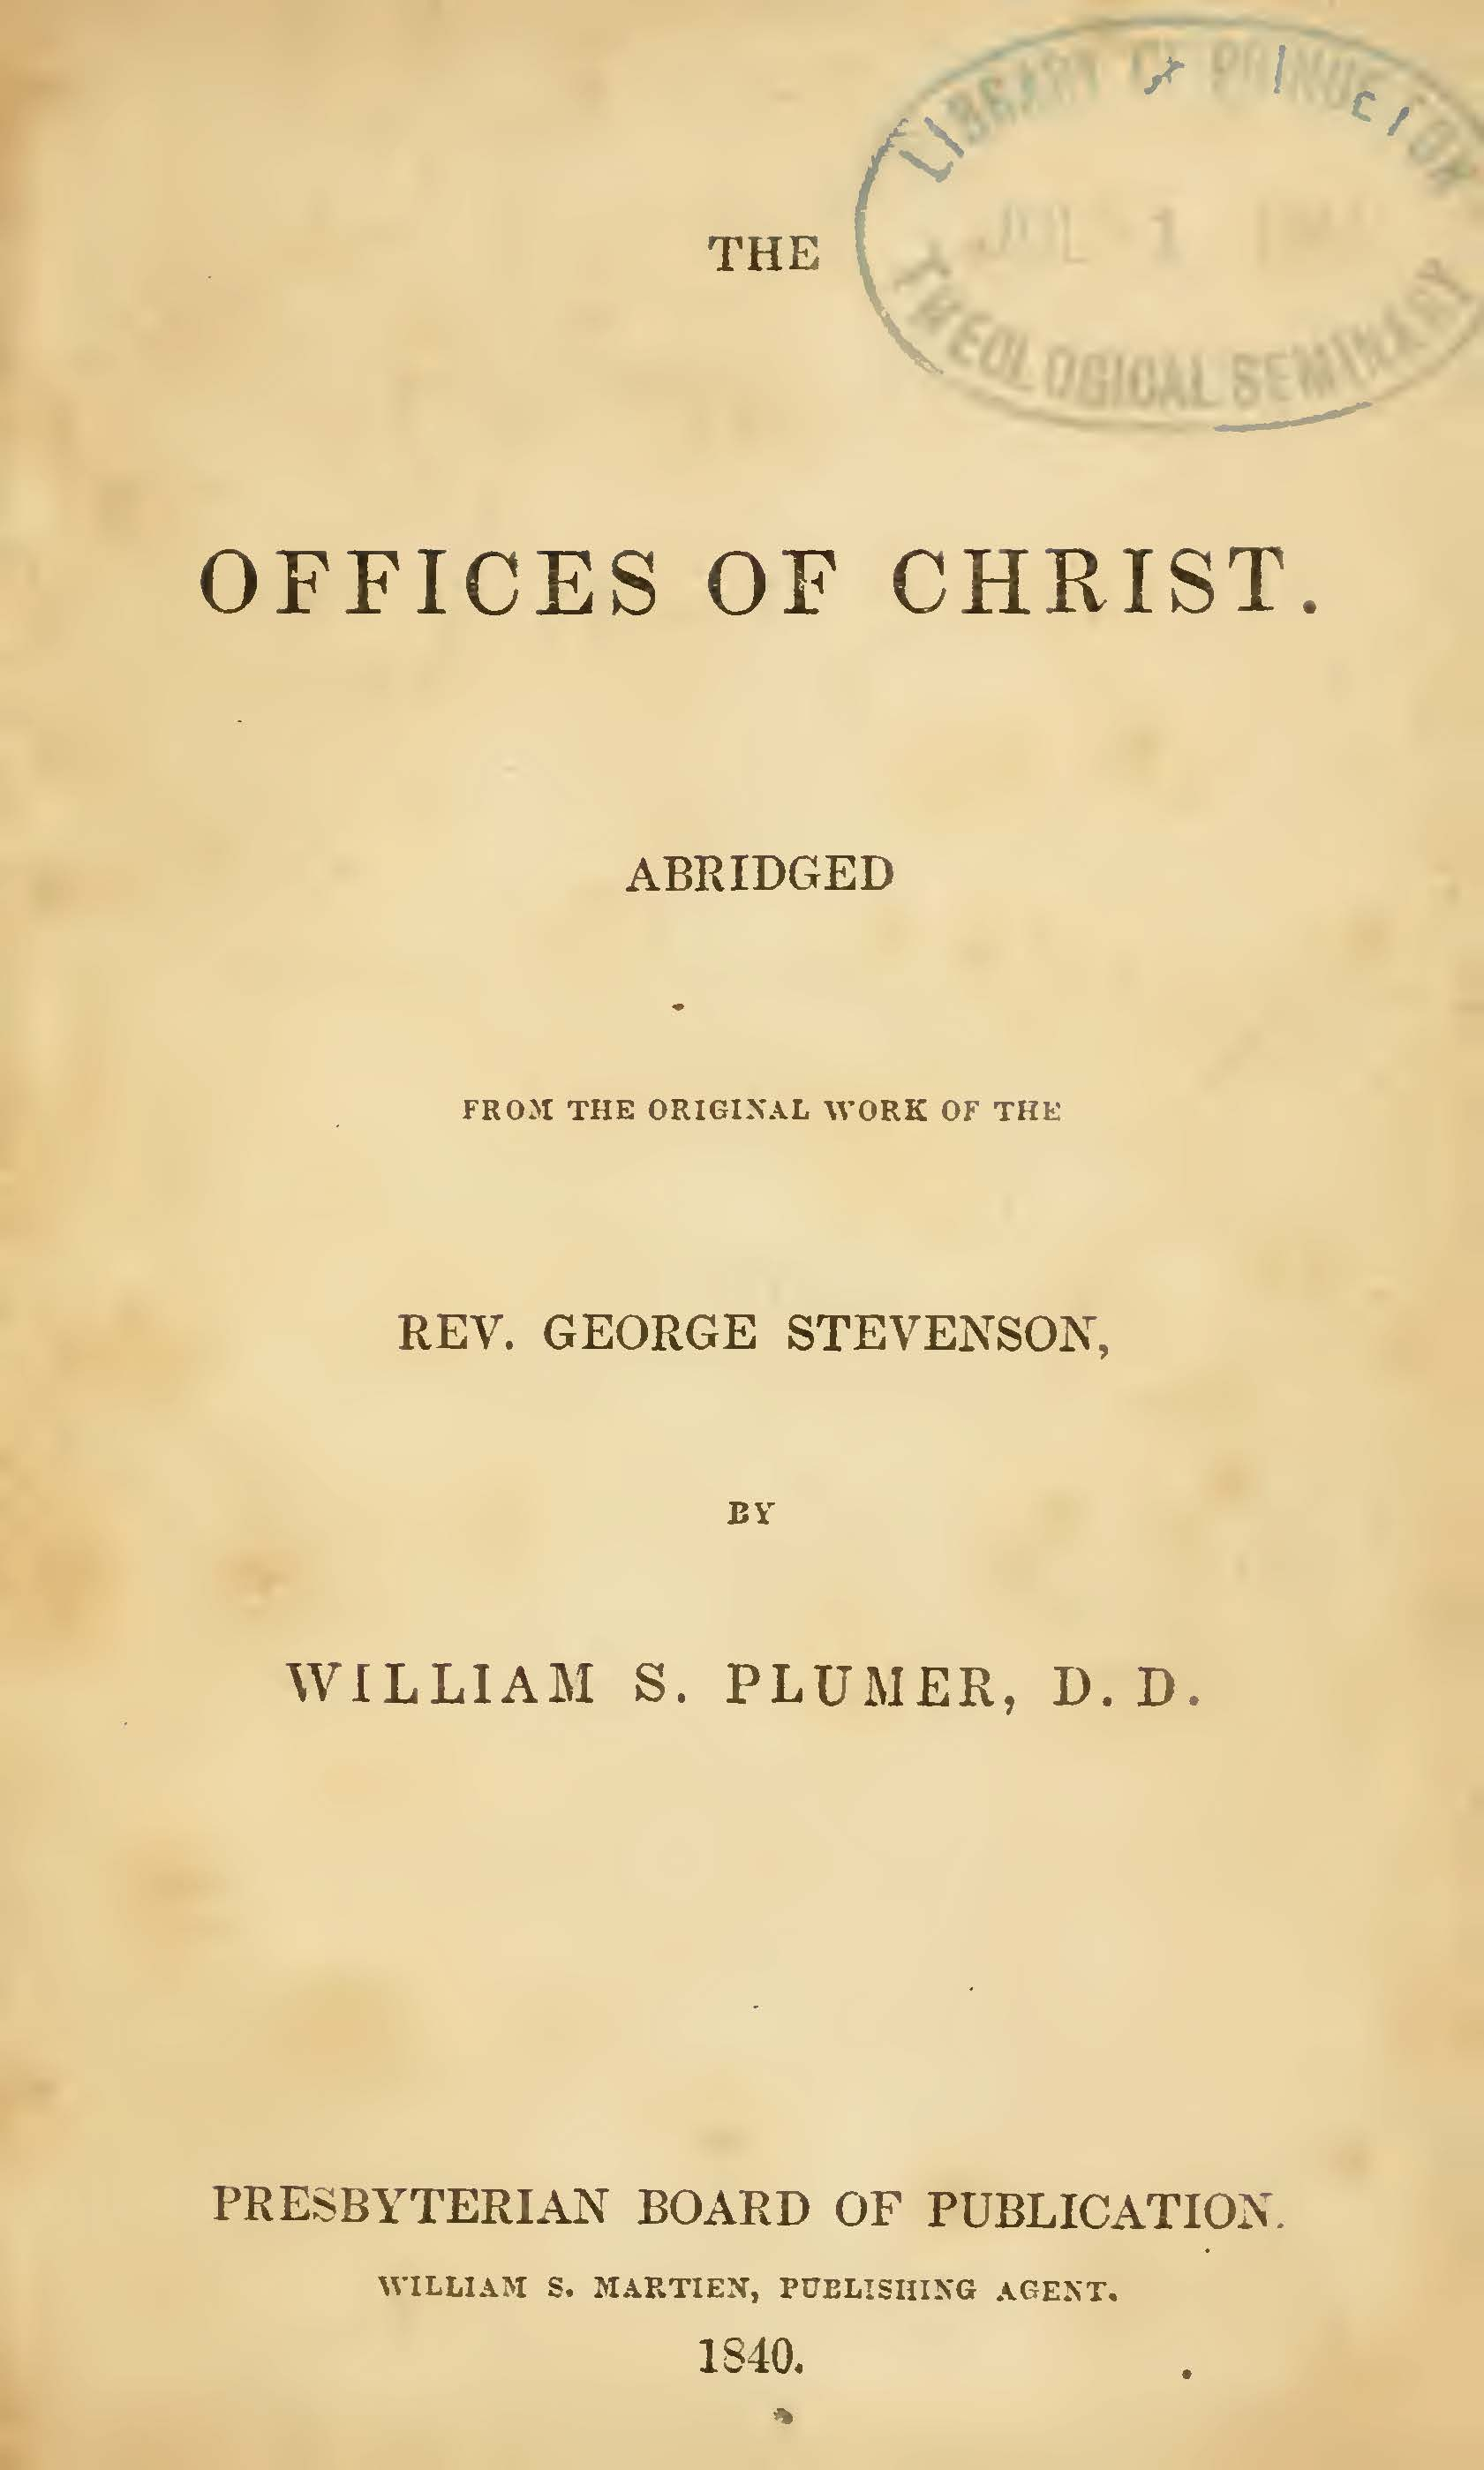 Plumer, William Swan, The Offices of Christ Title Page.jpg